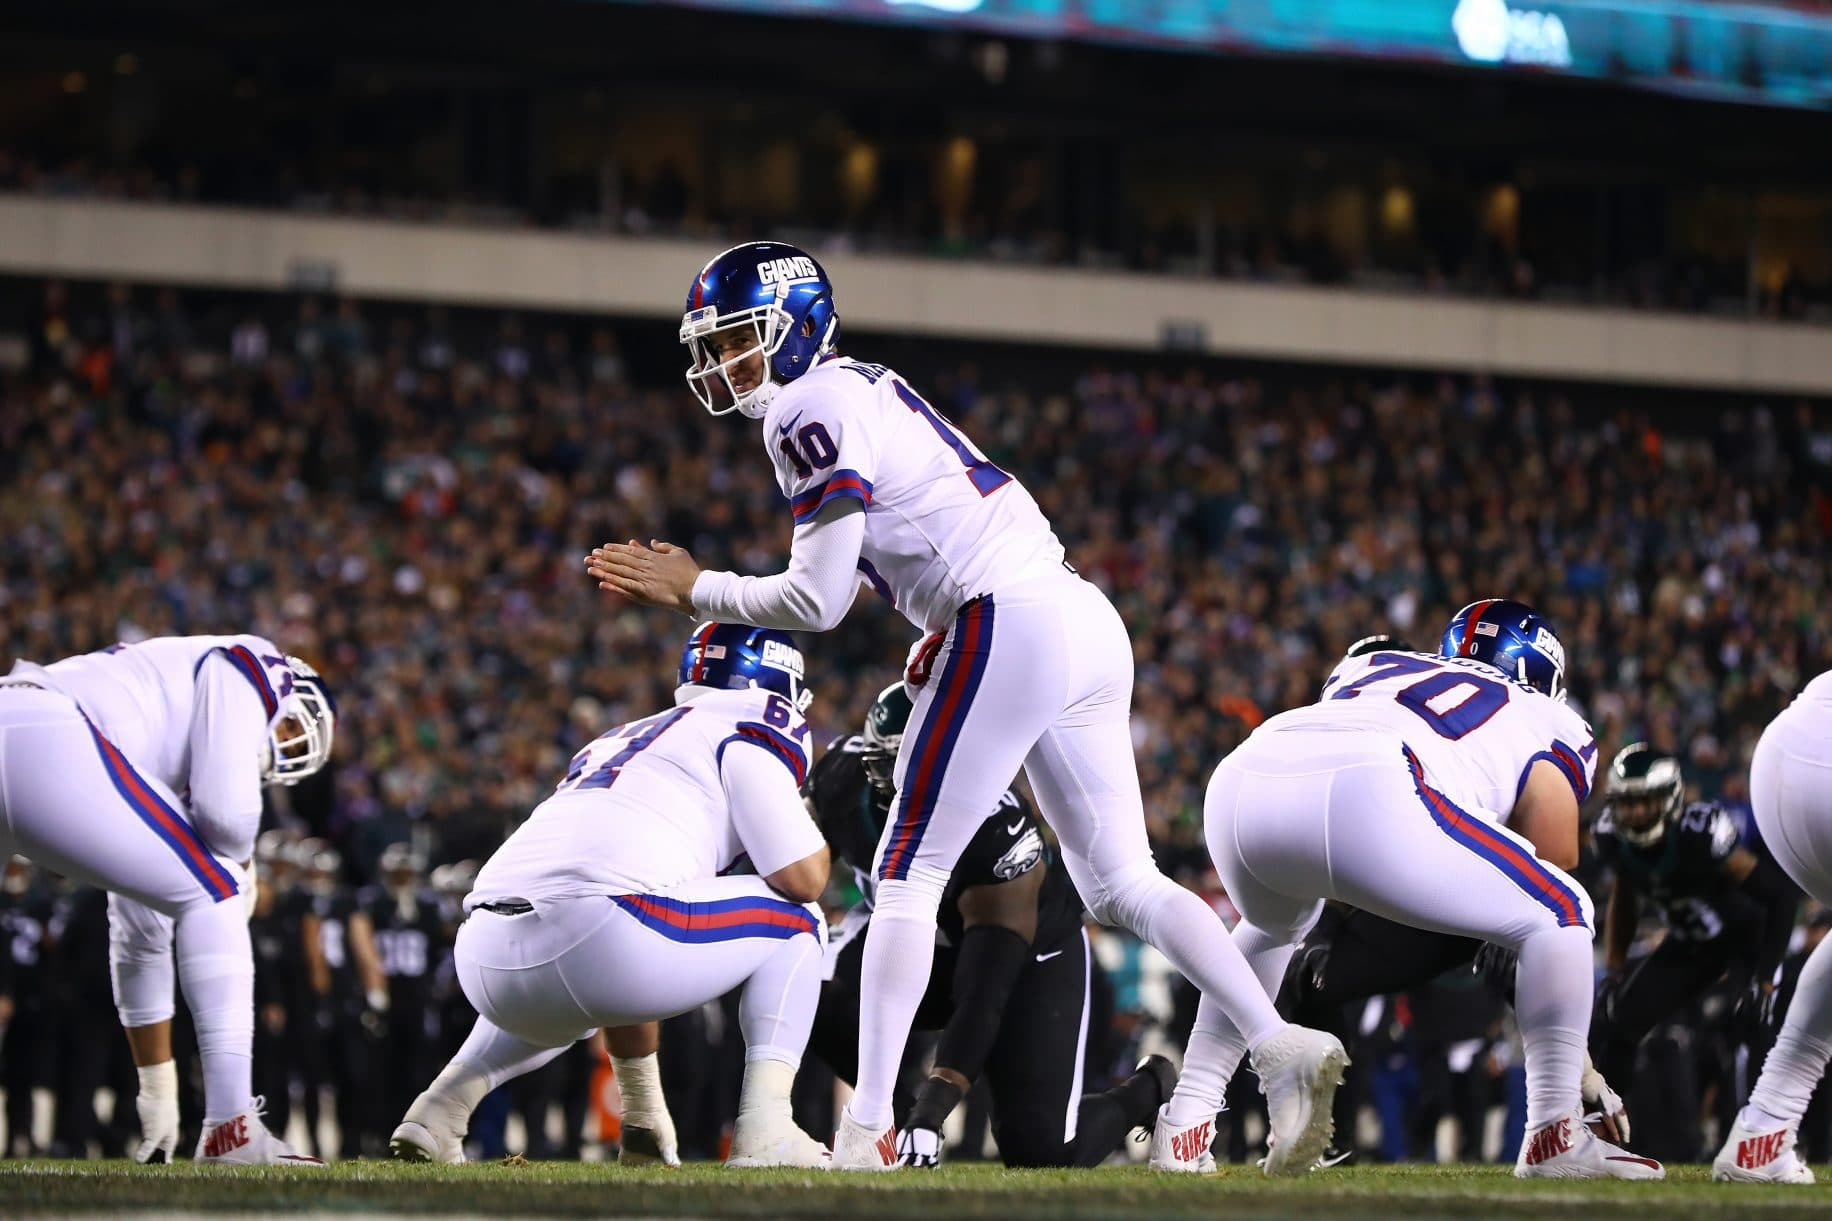 New York Giants @ Philadelphia Eagles: Jints Desperate in City of Brotherly Love 1